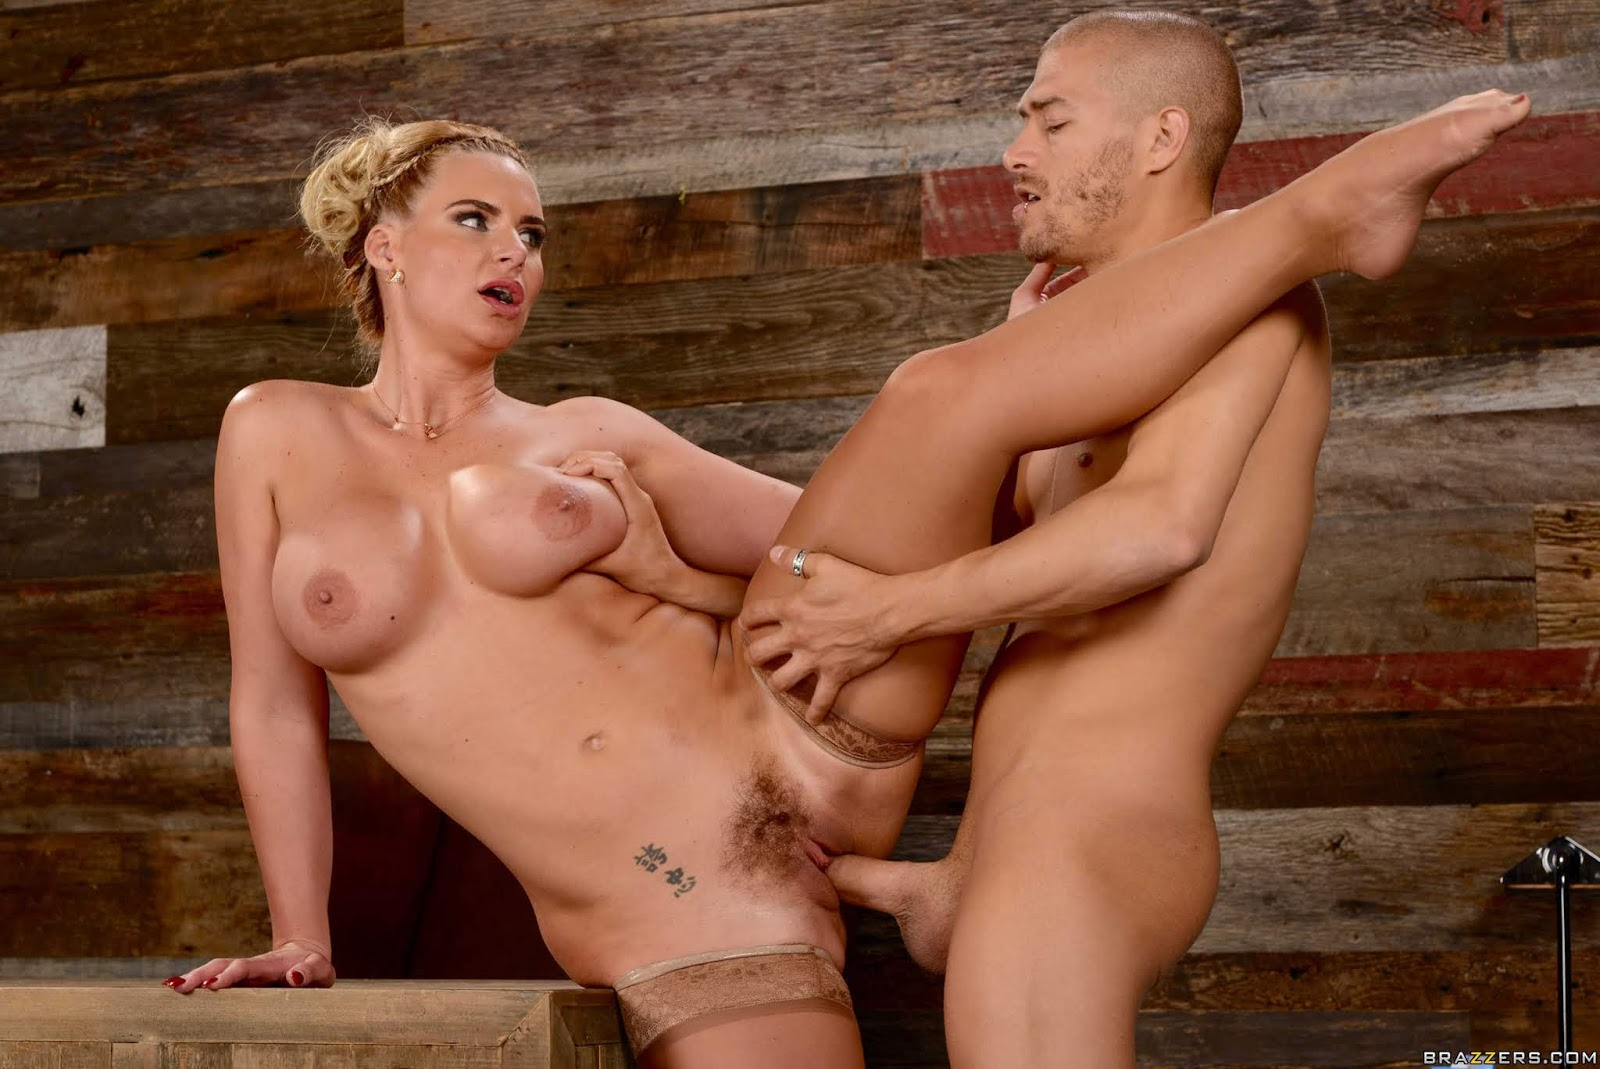 Phoenix-Marie-%3A-Breaking-And-Entering-And-Insertion-%23%23-BRAZZERS-e6vw9ignl0.jpg